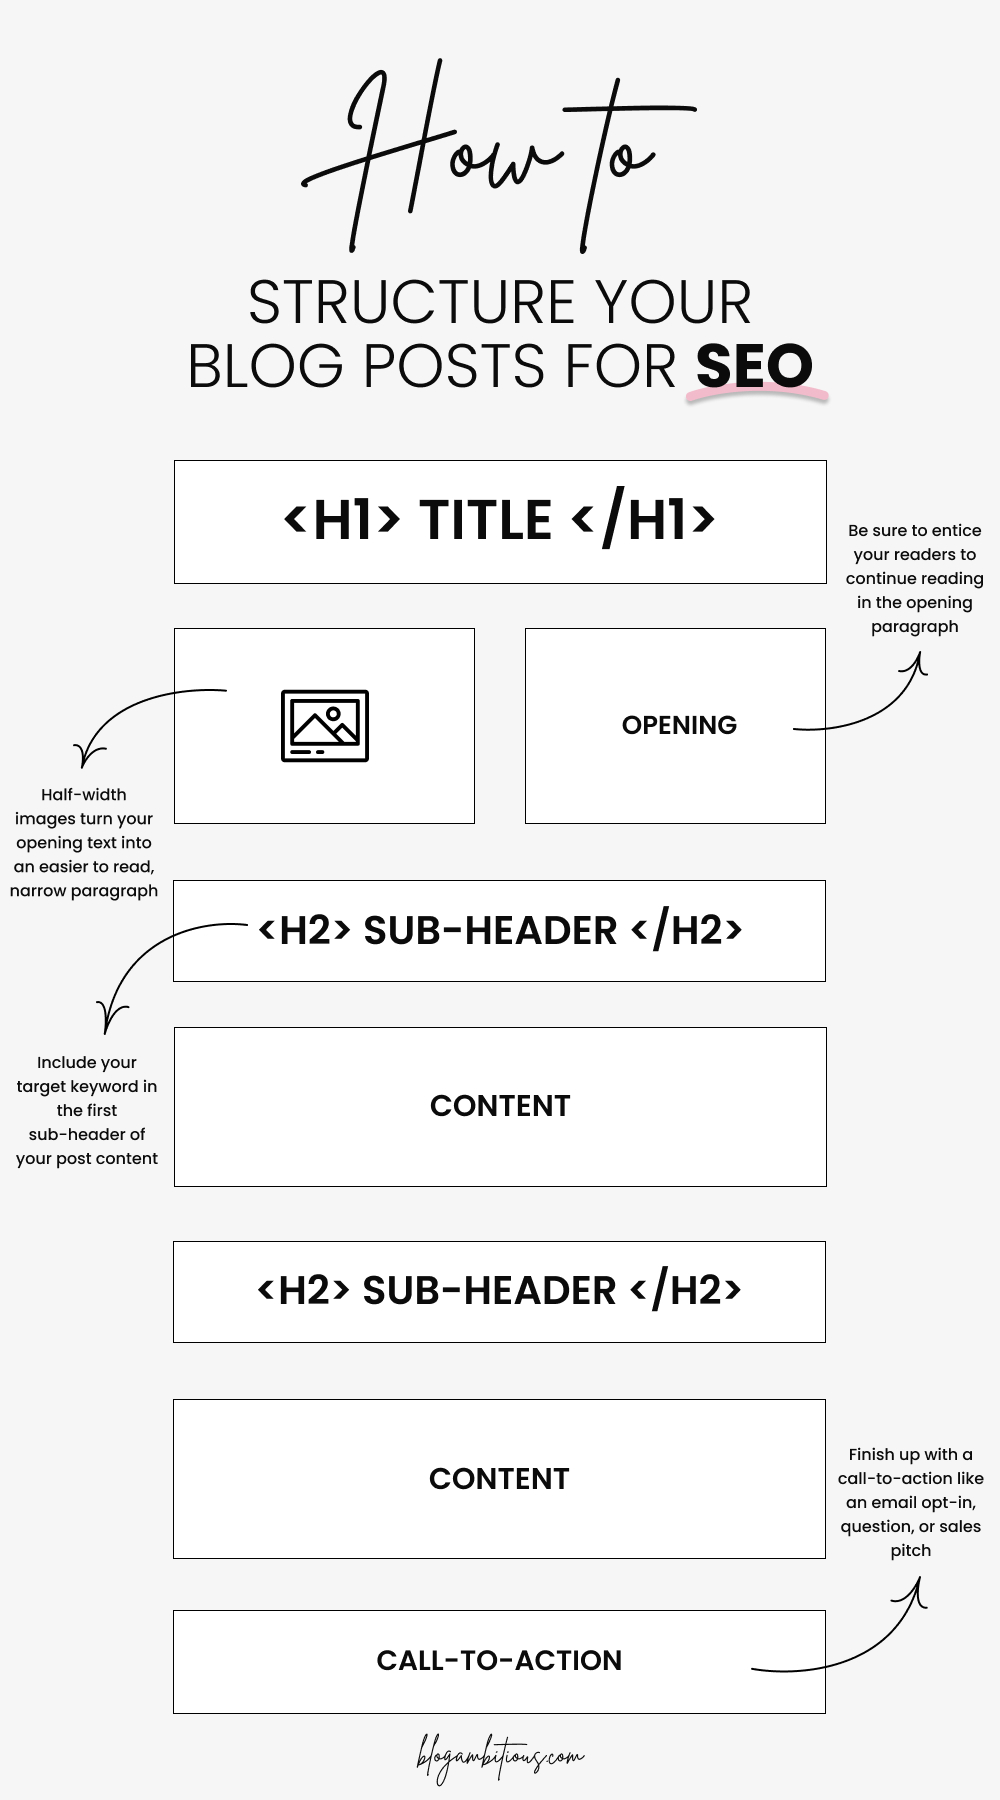 How To Structure Your Blog Posts For SEO